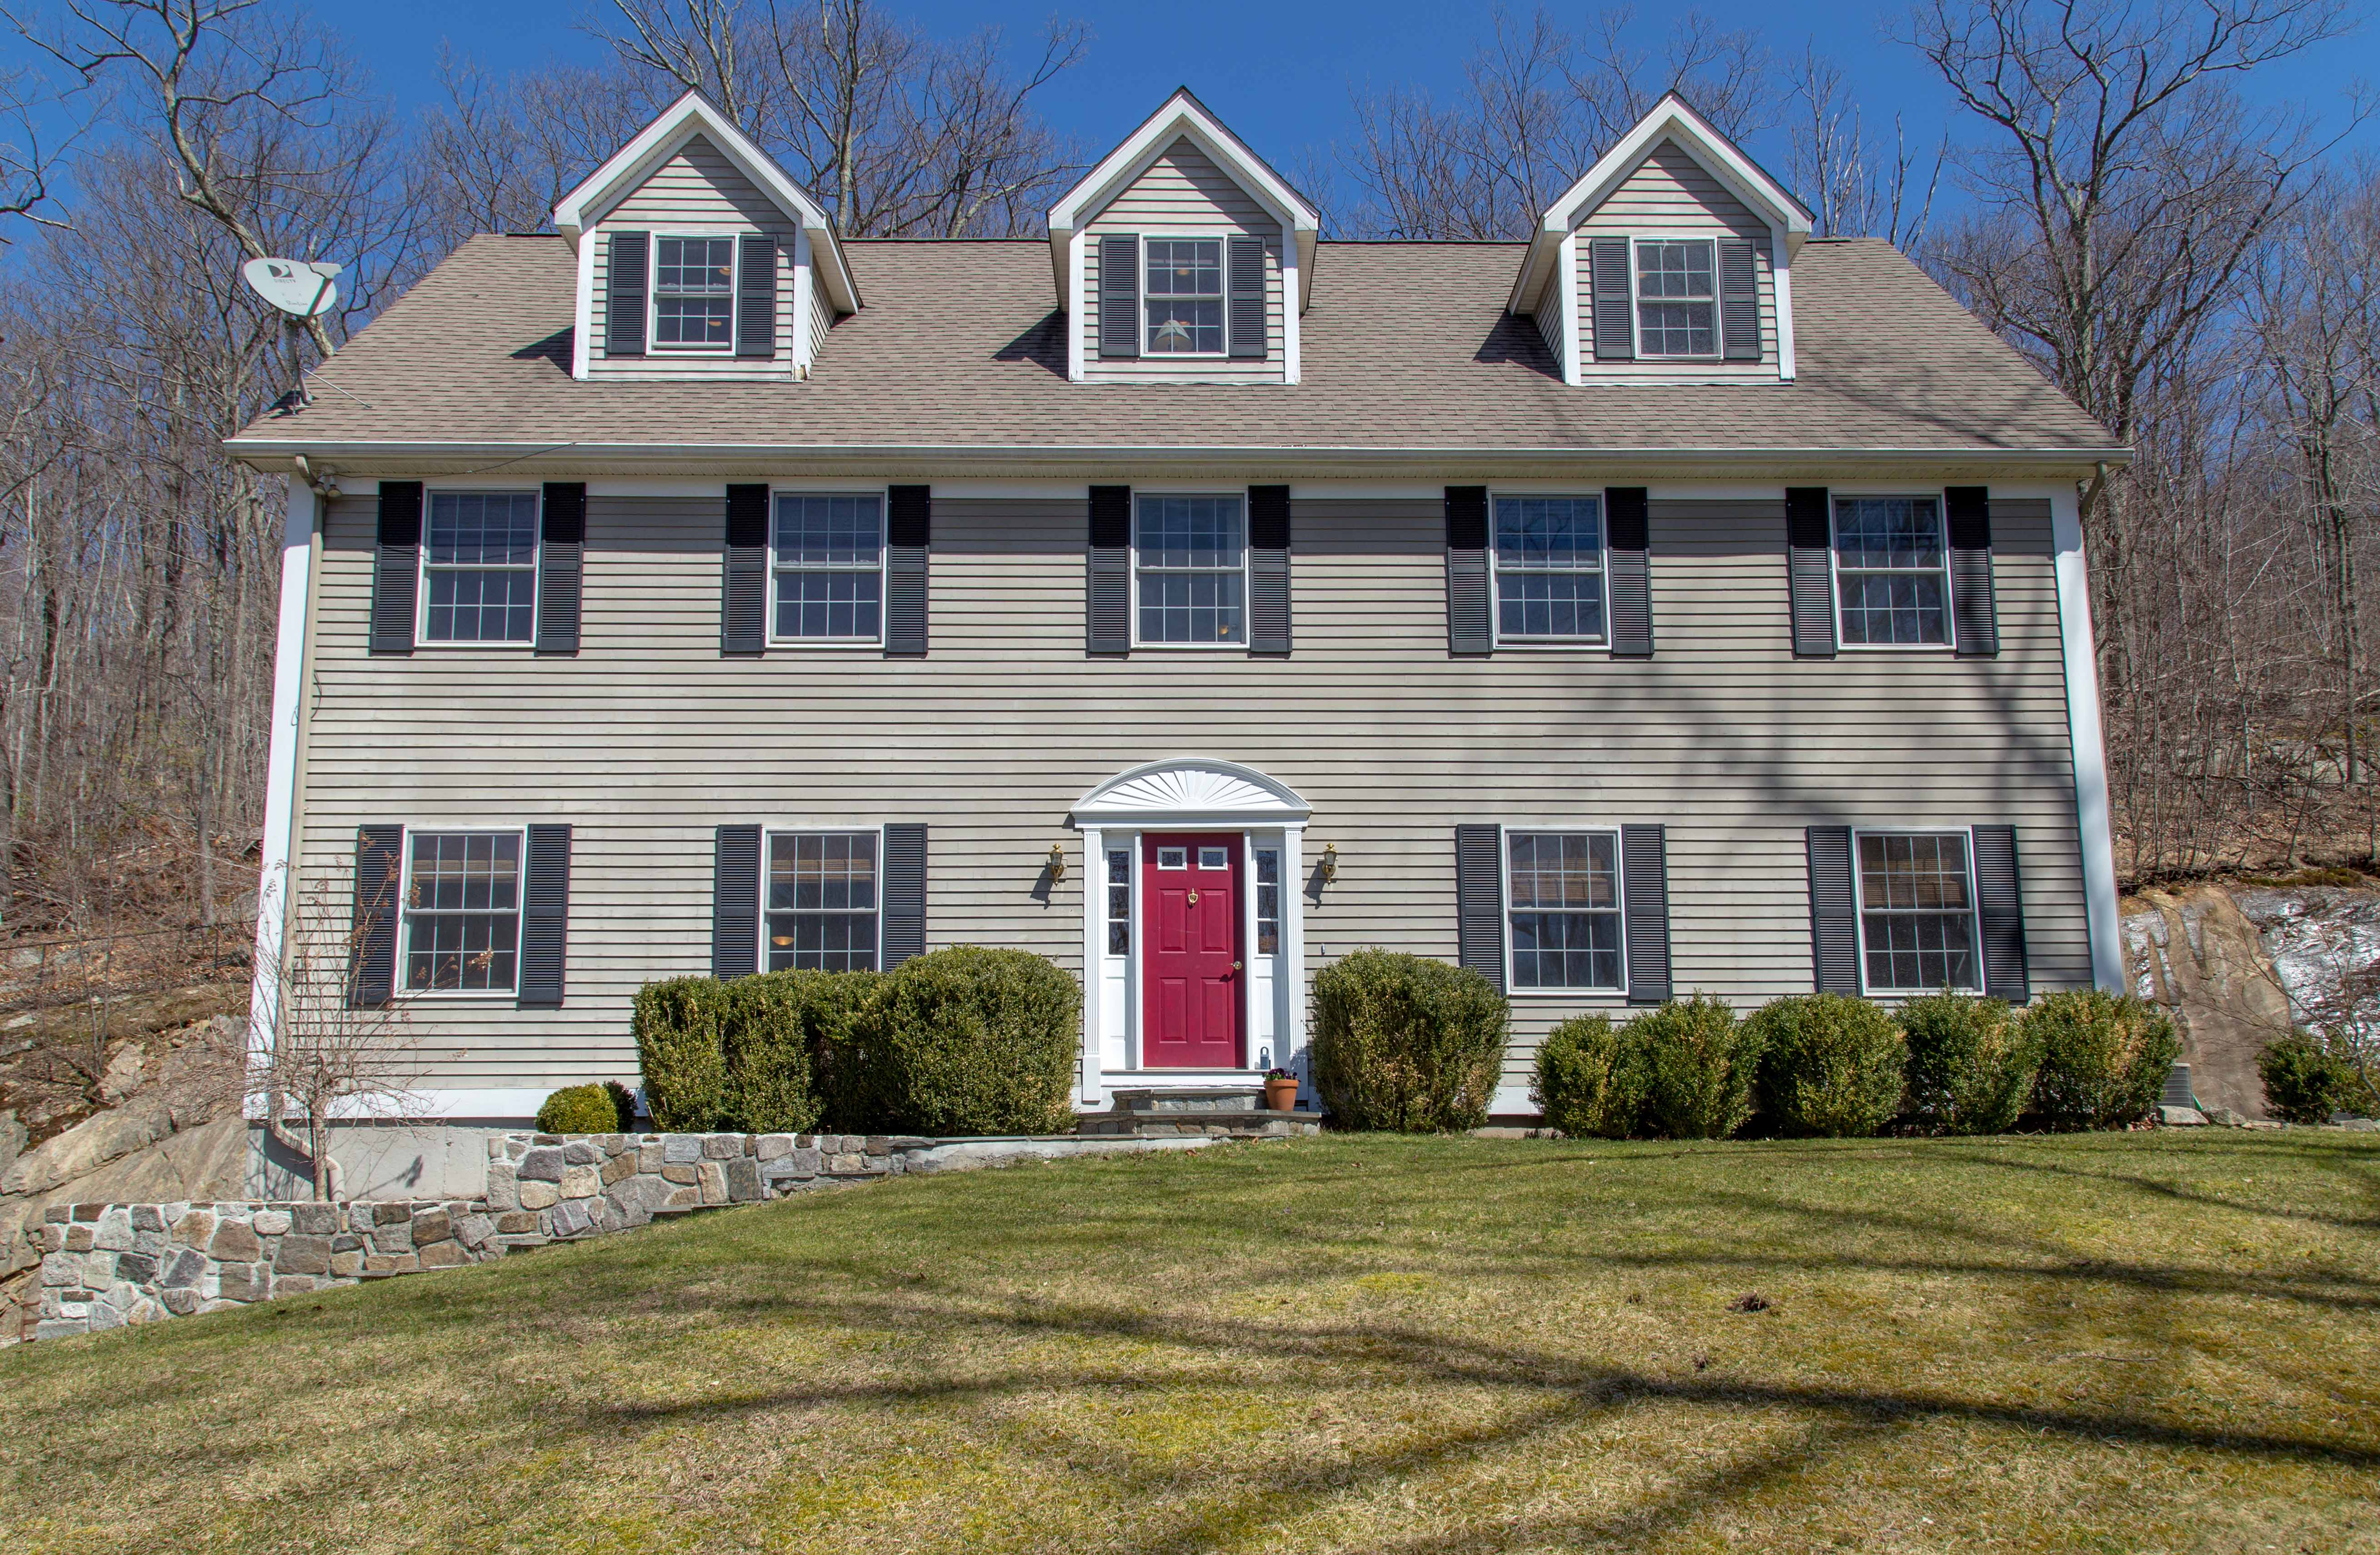 Vivienda unifamiliar por un Venta en Classic 5 Bedroom Colonial 105 Pine Mountain Road Ridgefield, Connecticut 06877 Estados Unidos